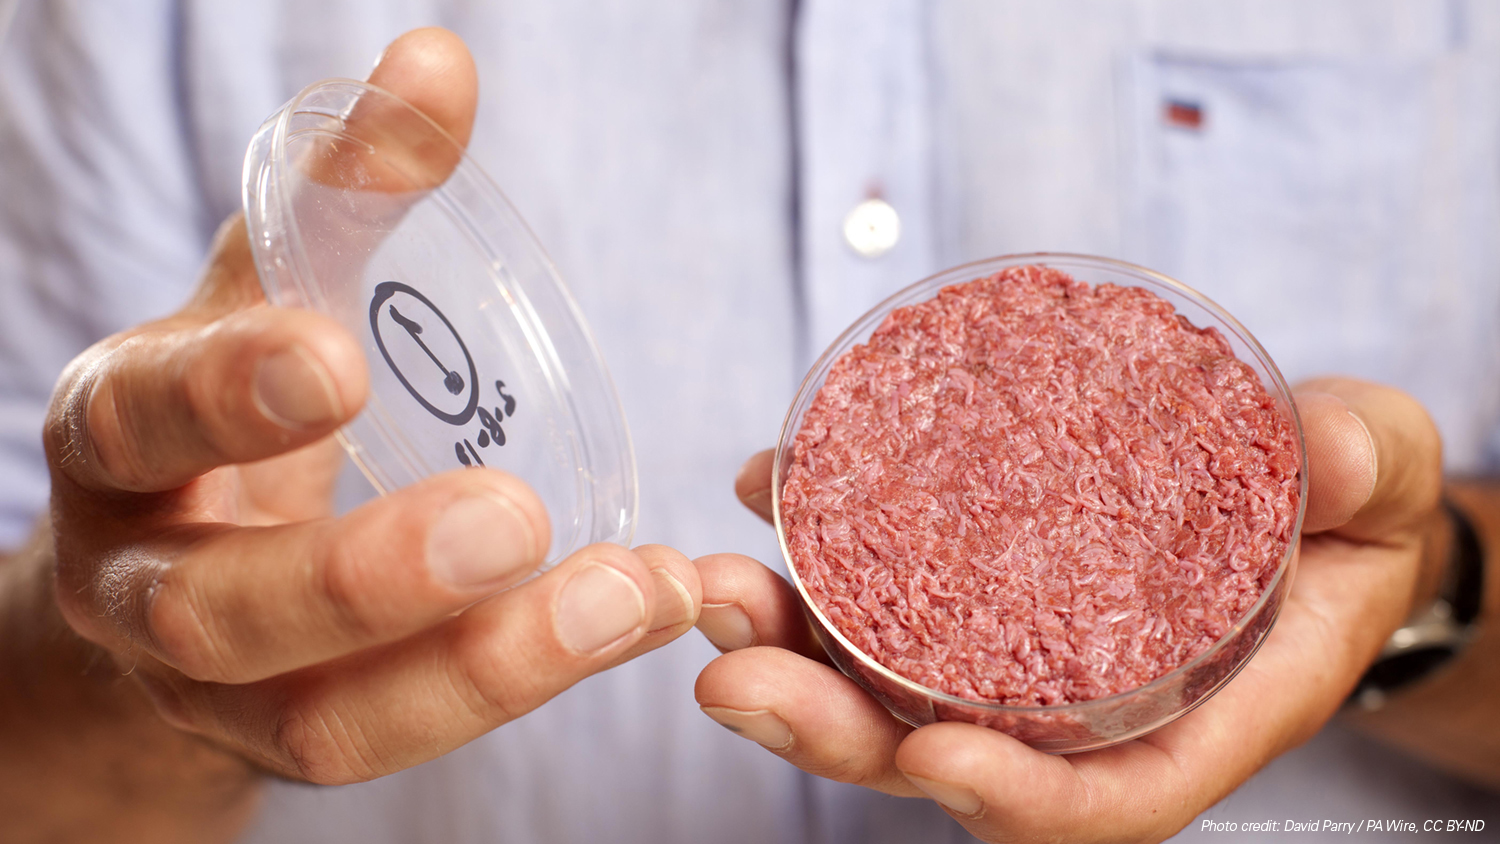 two hands holding cultured beef in a petri dish and the petri dish lid, photo credit David Parry PA Wire